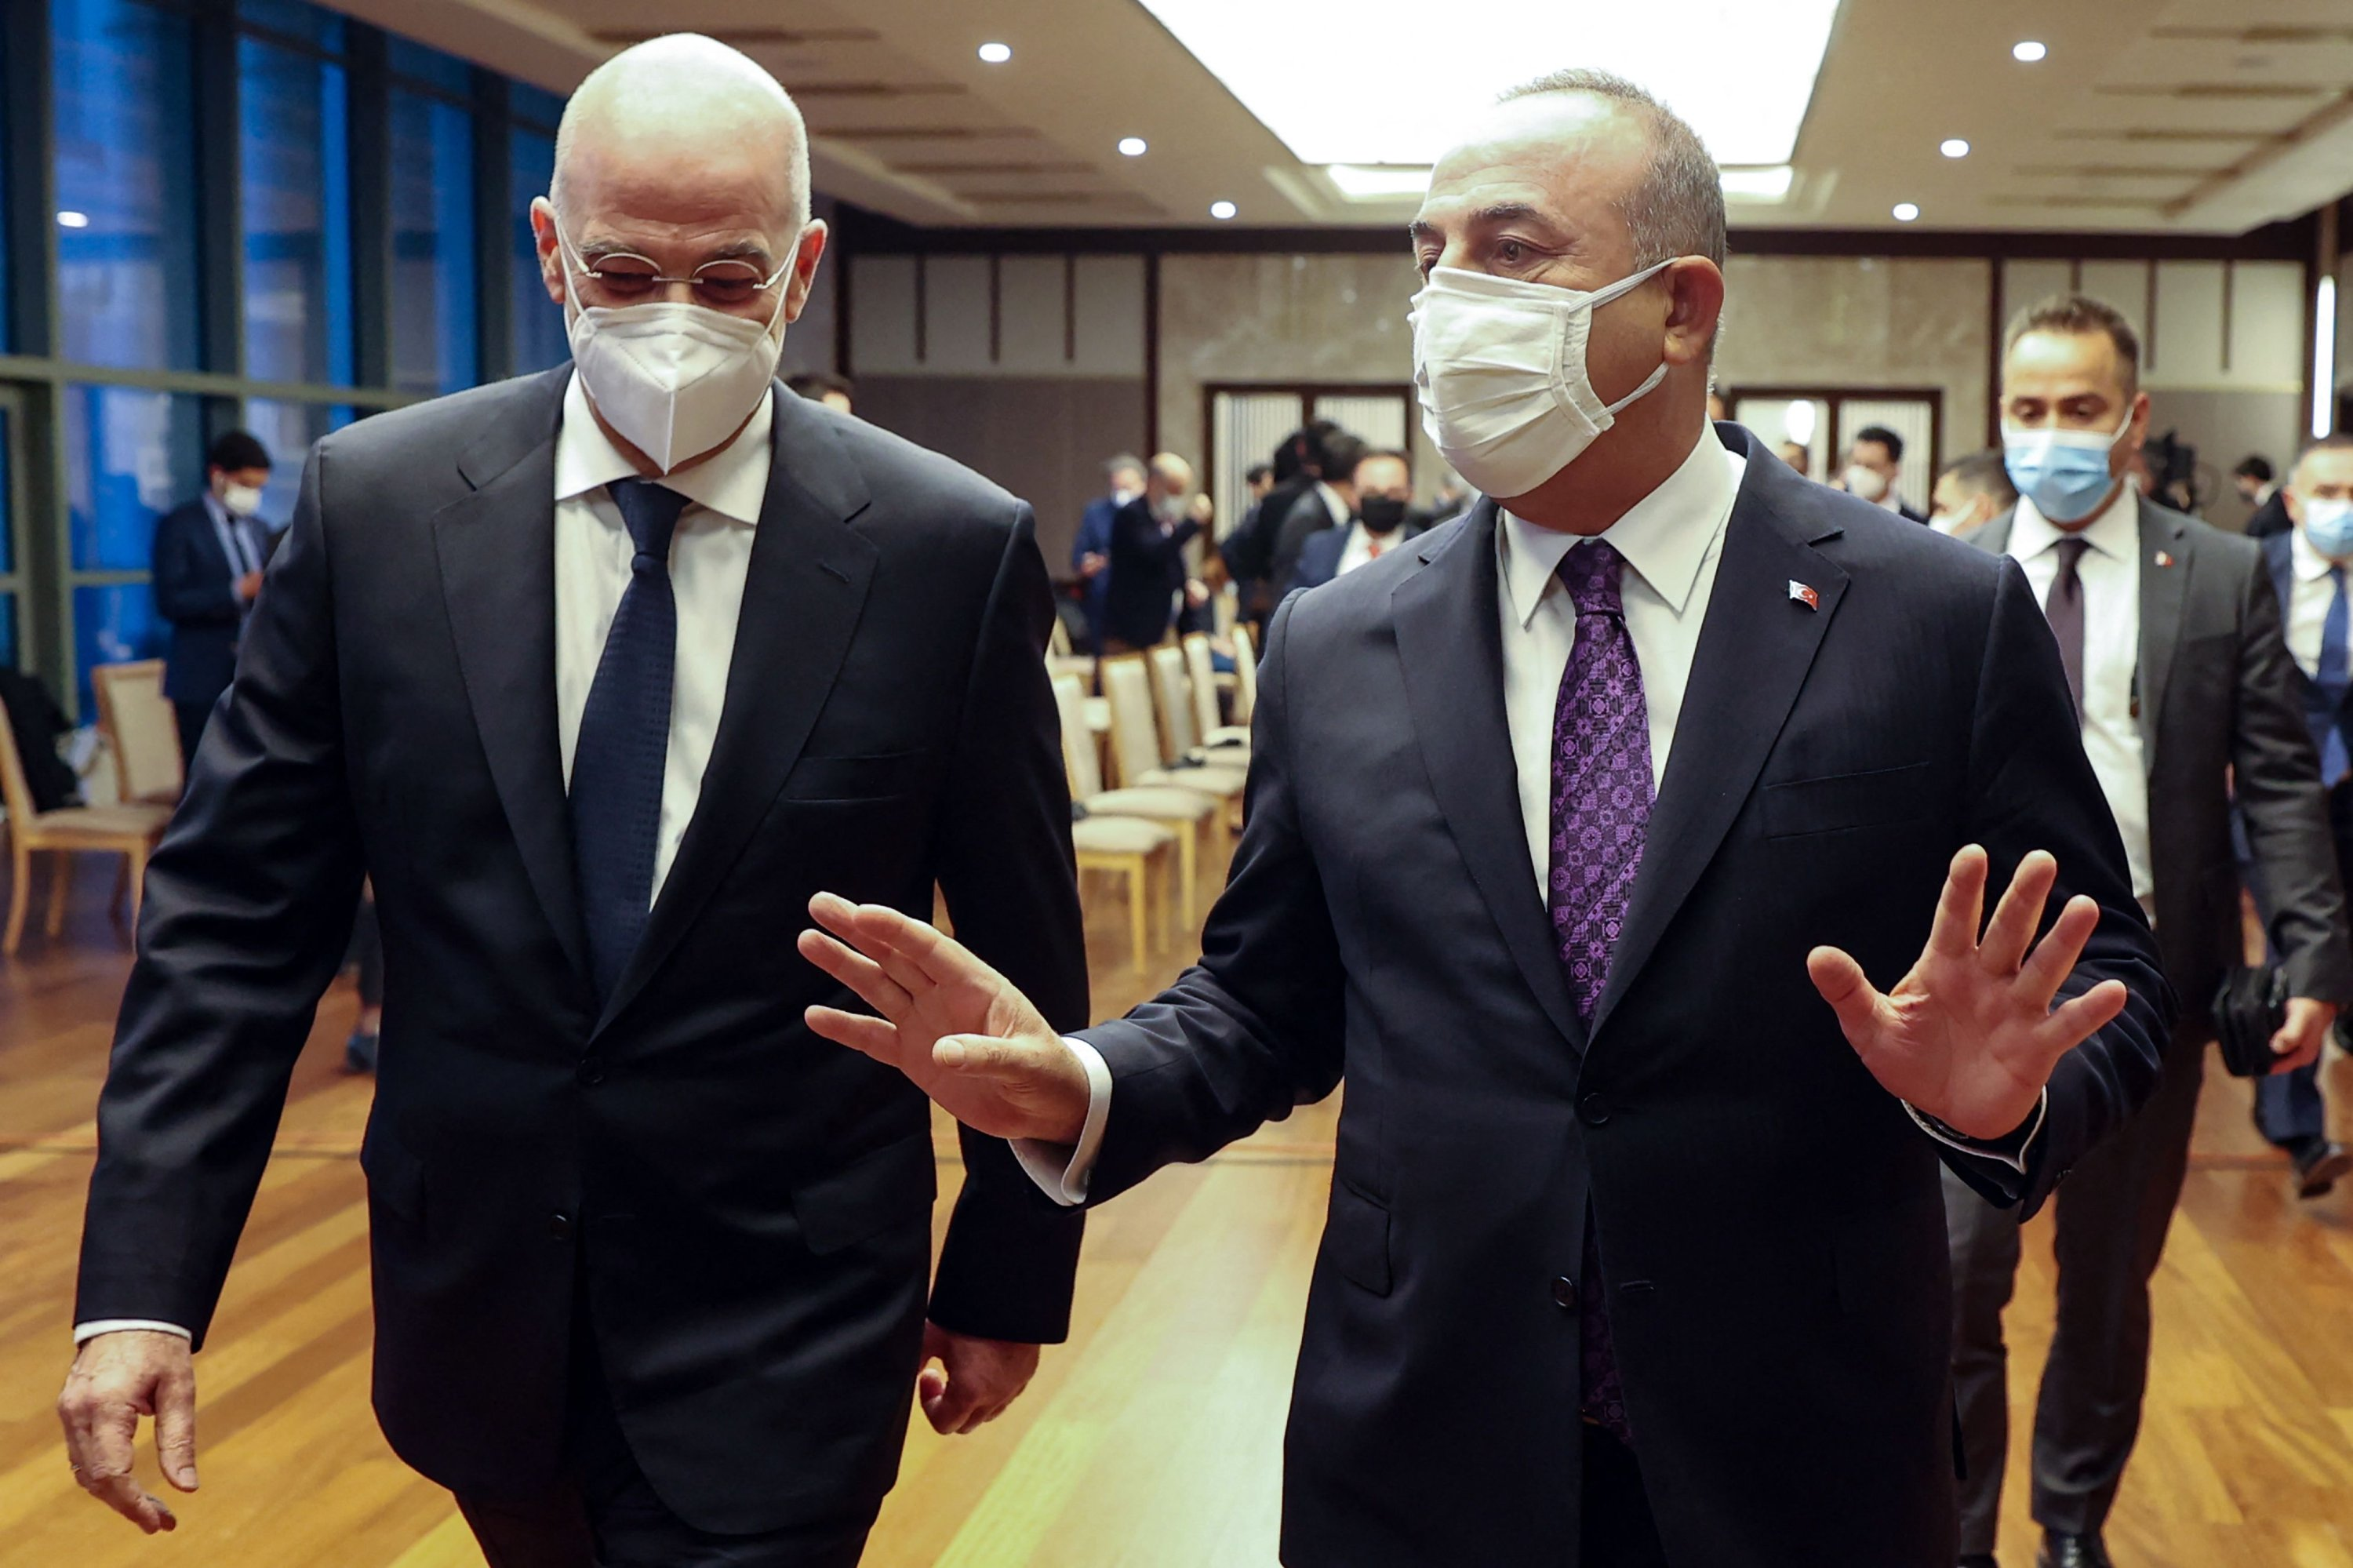 Greece's Foreign Minister Nikos Dendias (L) and Foreign Minister Mevlüt Çavuşoğlu arrive to hold joint press conference following their meeting in Ankara, Turkey, April 15, 2021. (AFP Photo)